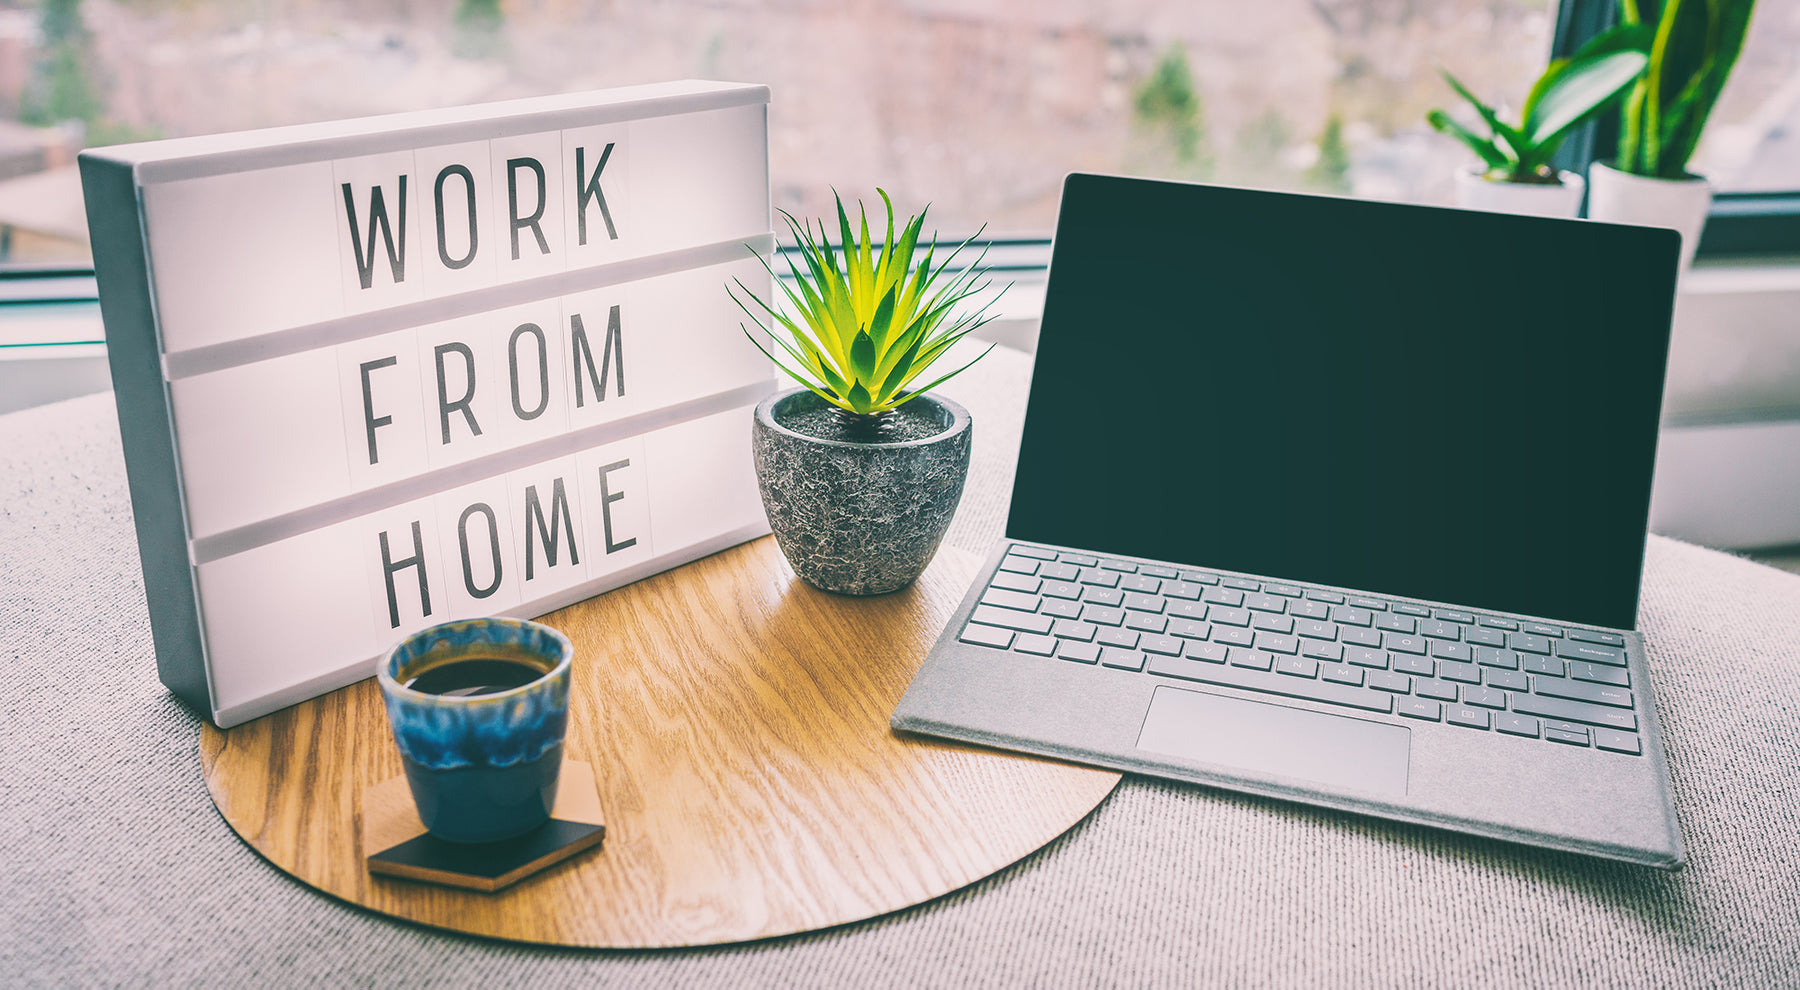 The challenges of working from home with some remedies